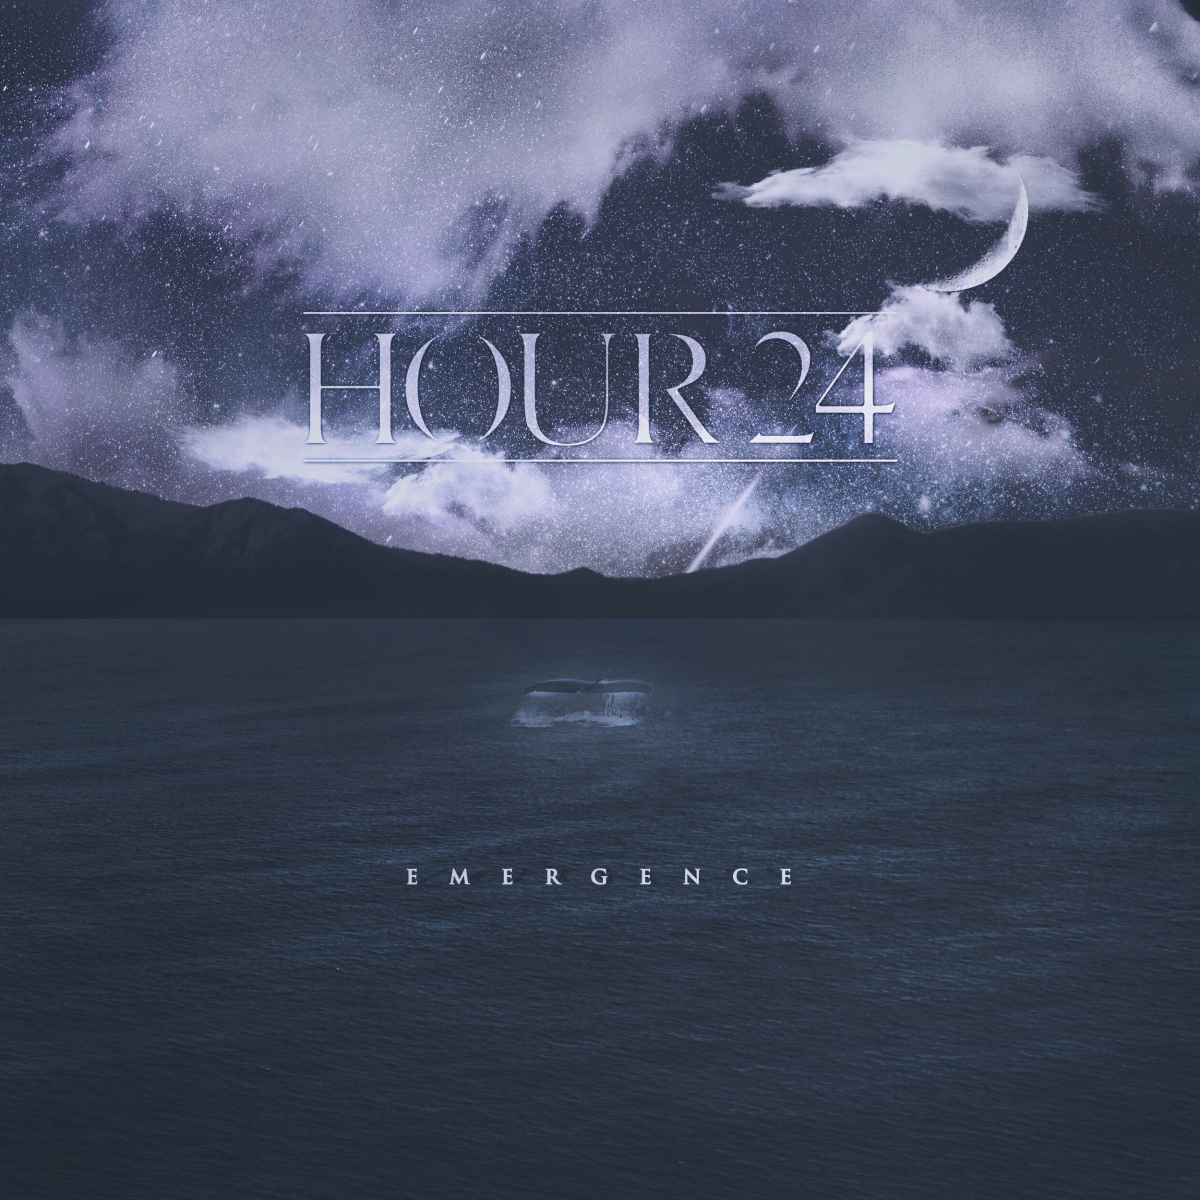 Header-Emergence-Hour24-AlbumArt